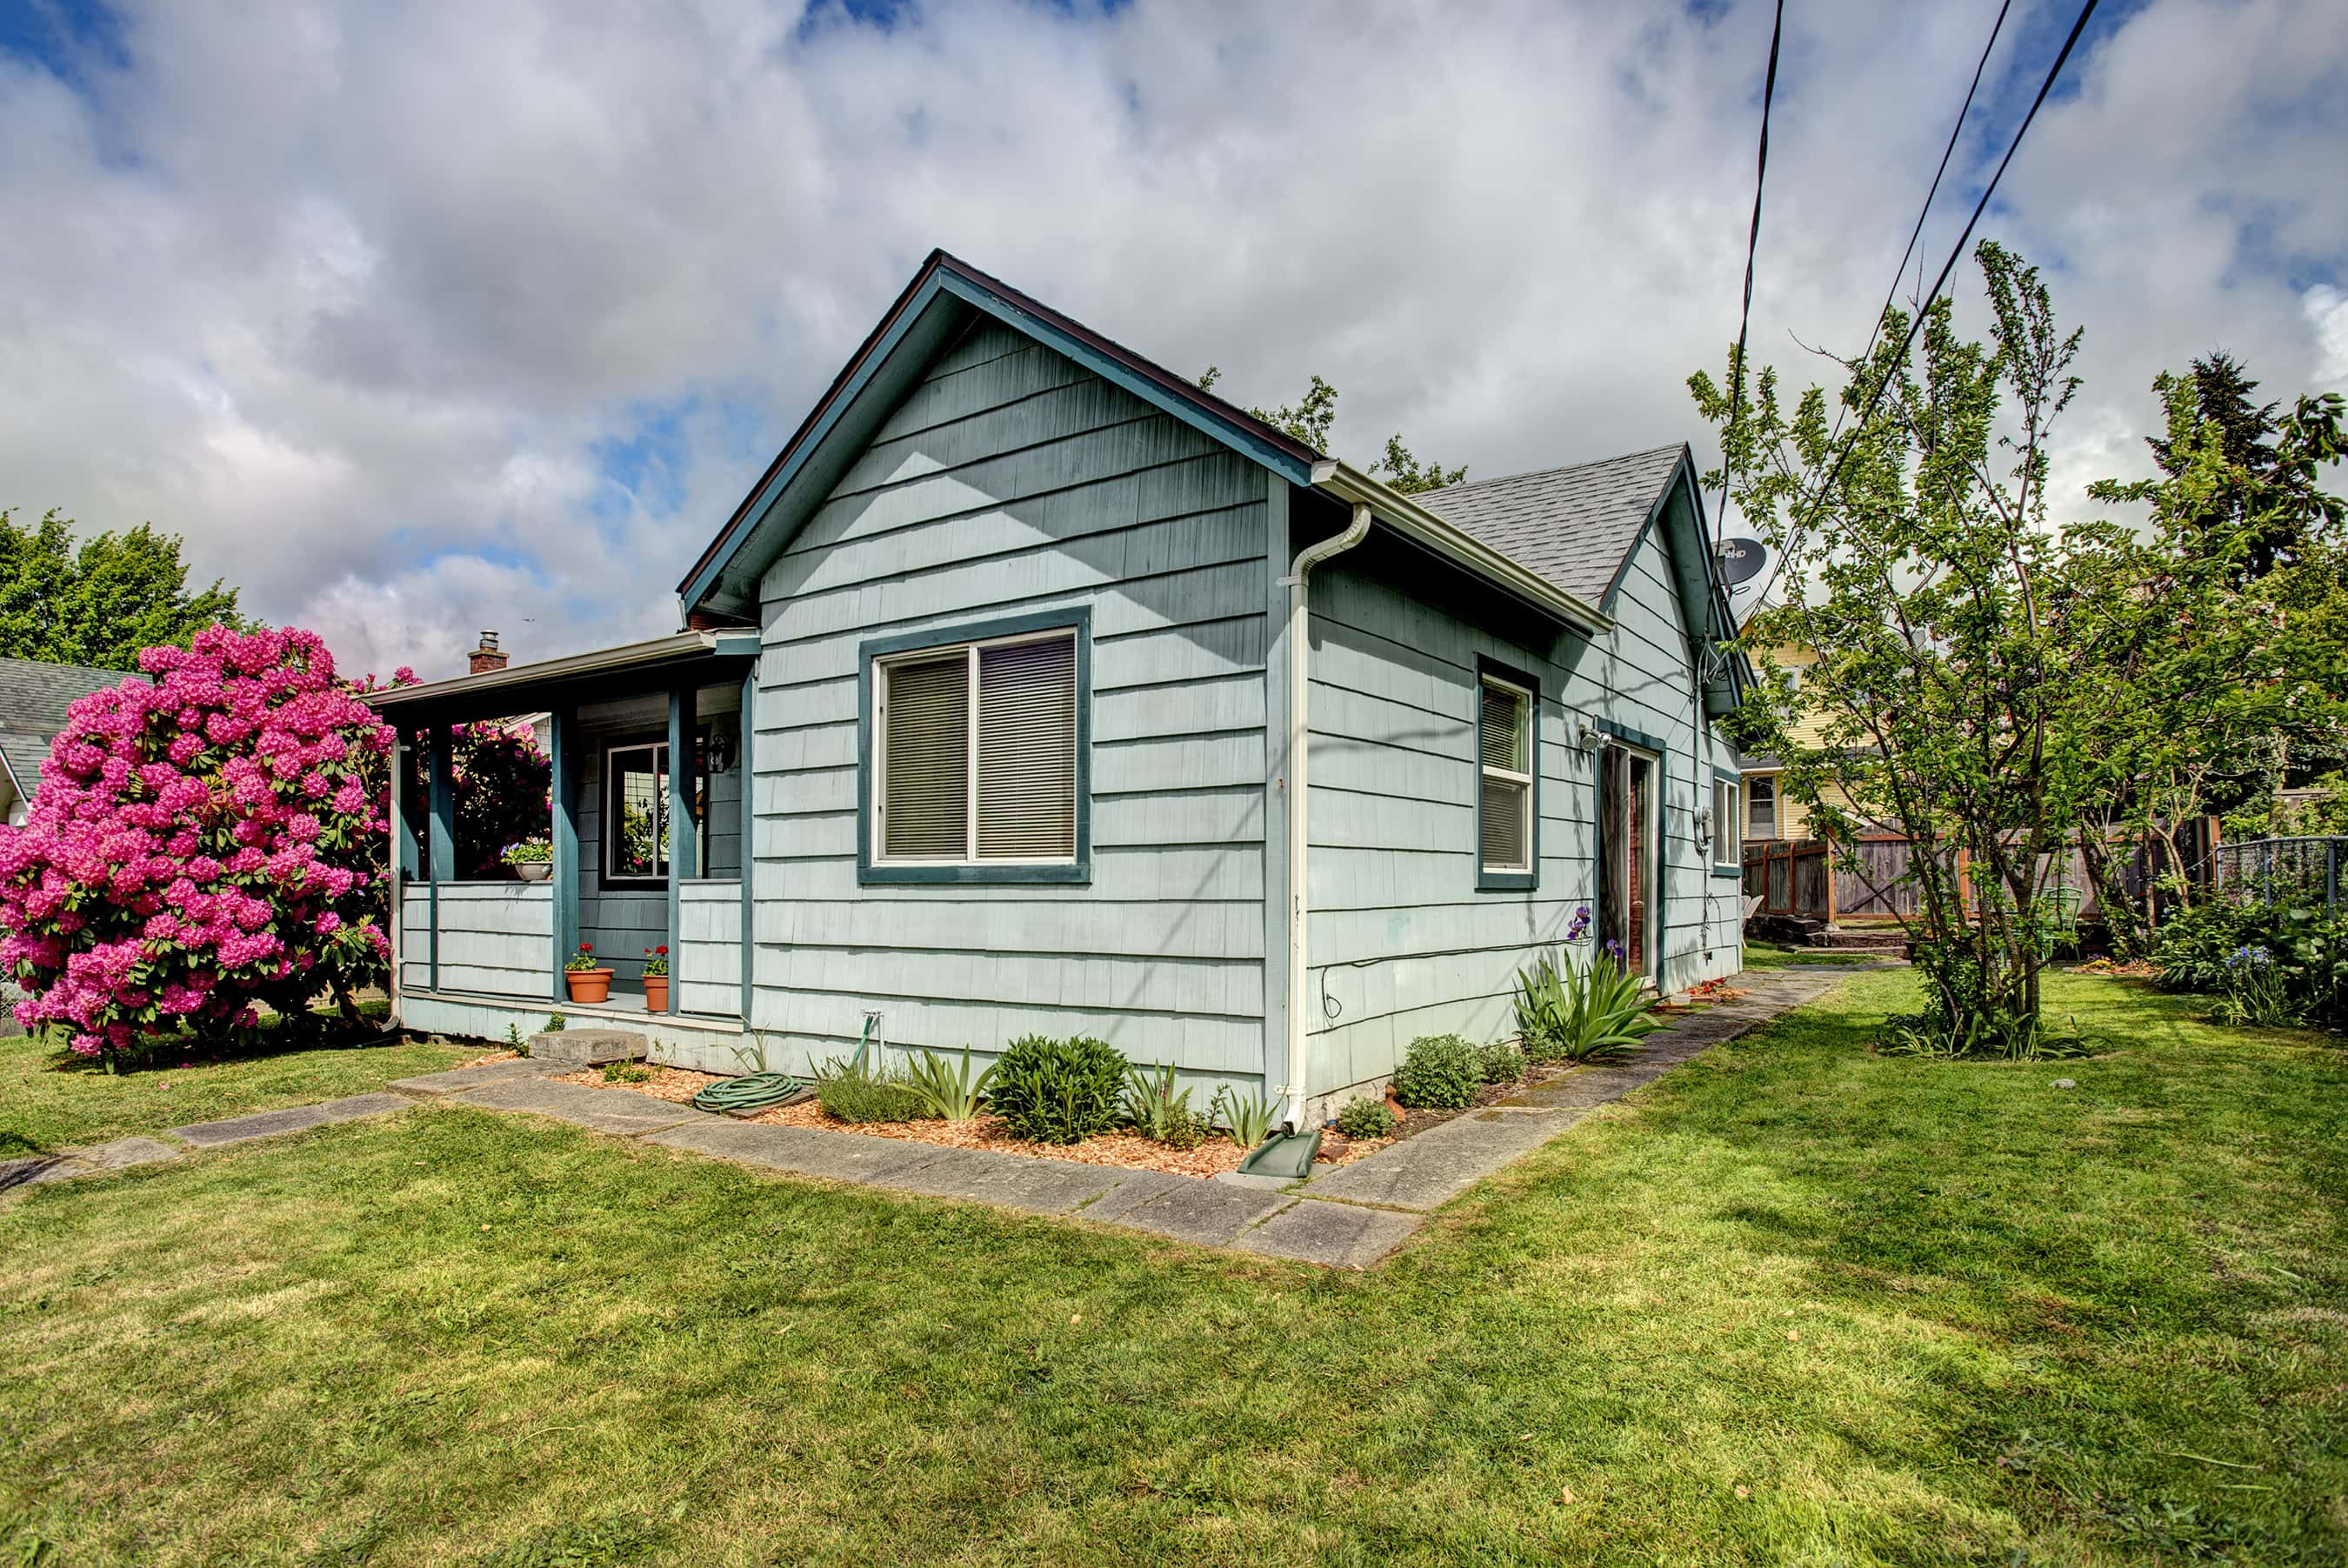 Come check out this adorable garden home in the Heart of Hillman City!